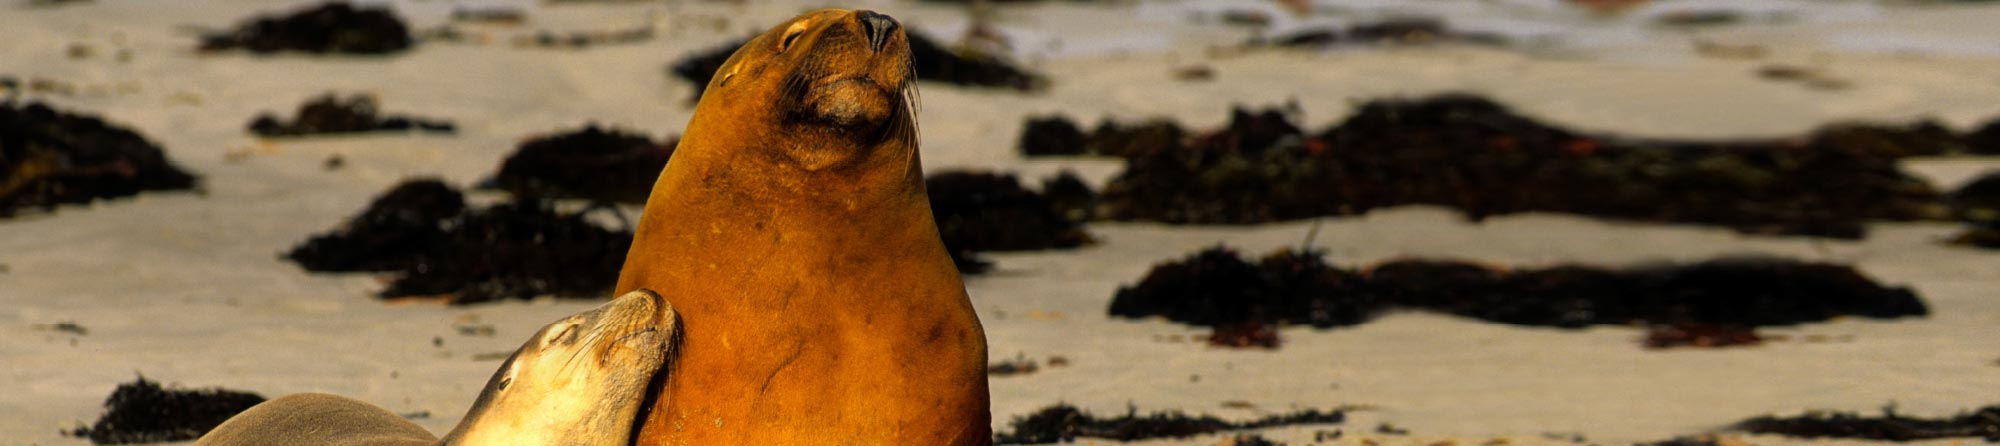 Australian Fur Seals cuddling and catching some sun at Kangaroo Island